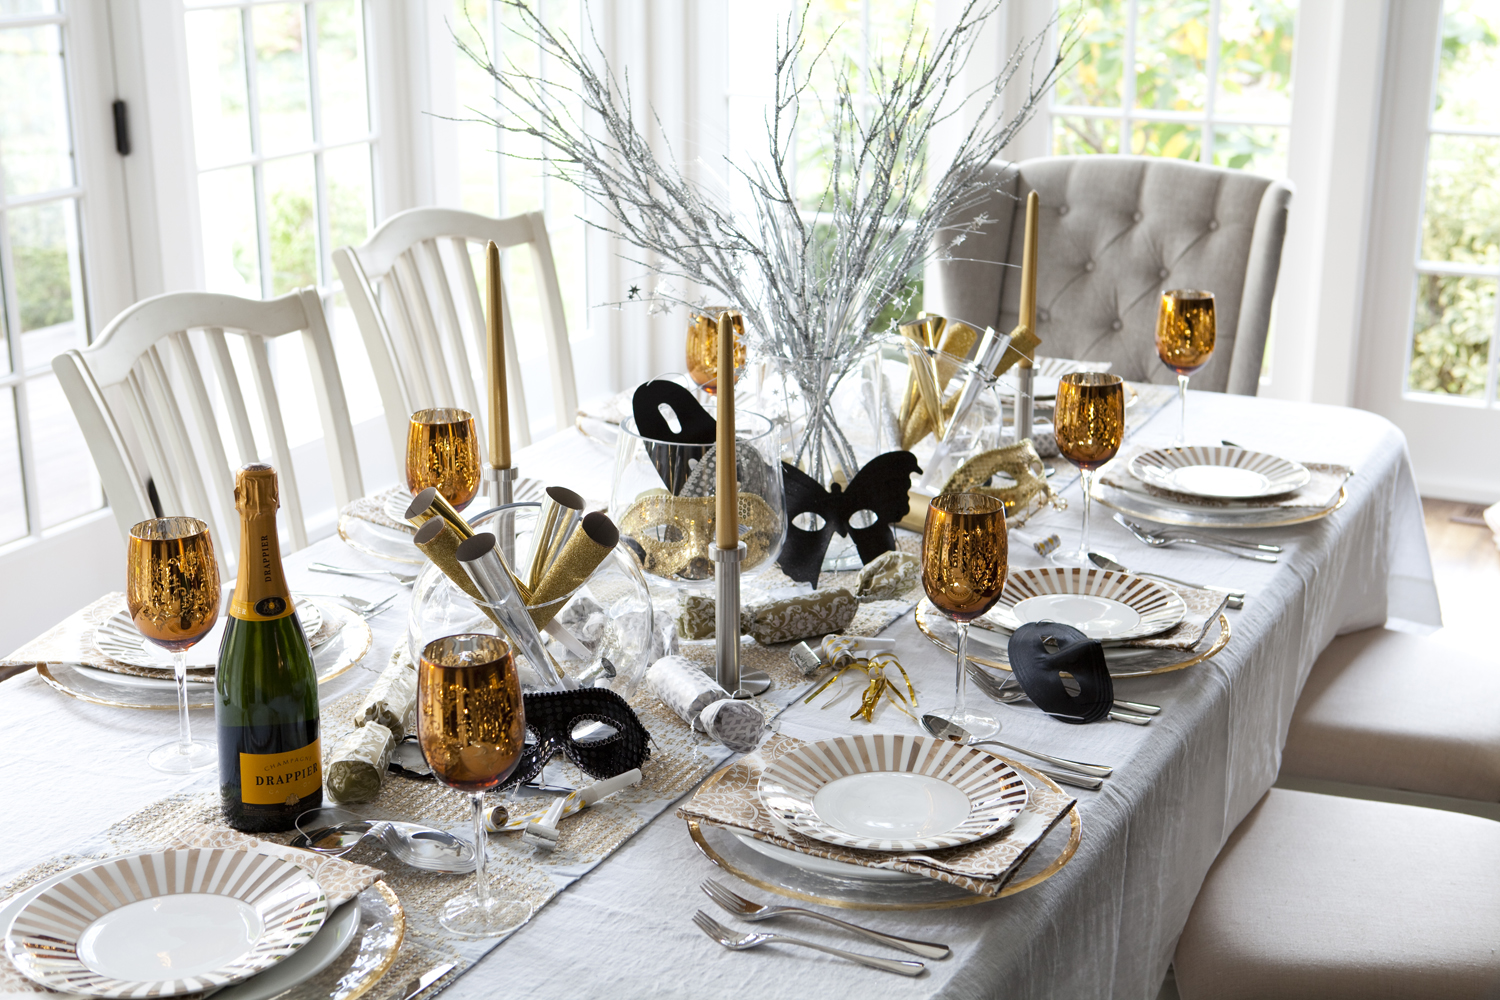 Karin lidbeck december 2012 for Dinner table decoration ideas